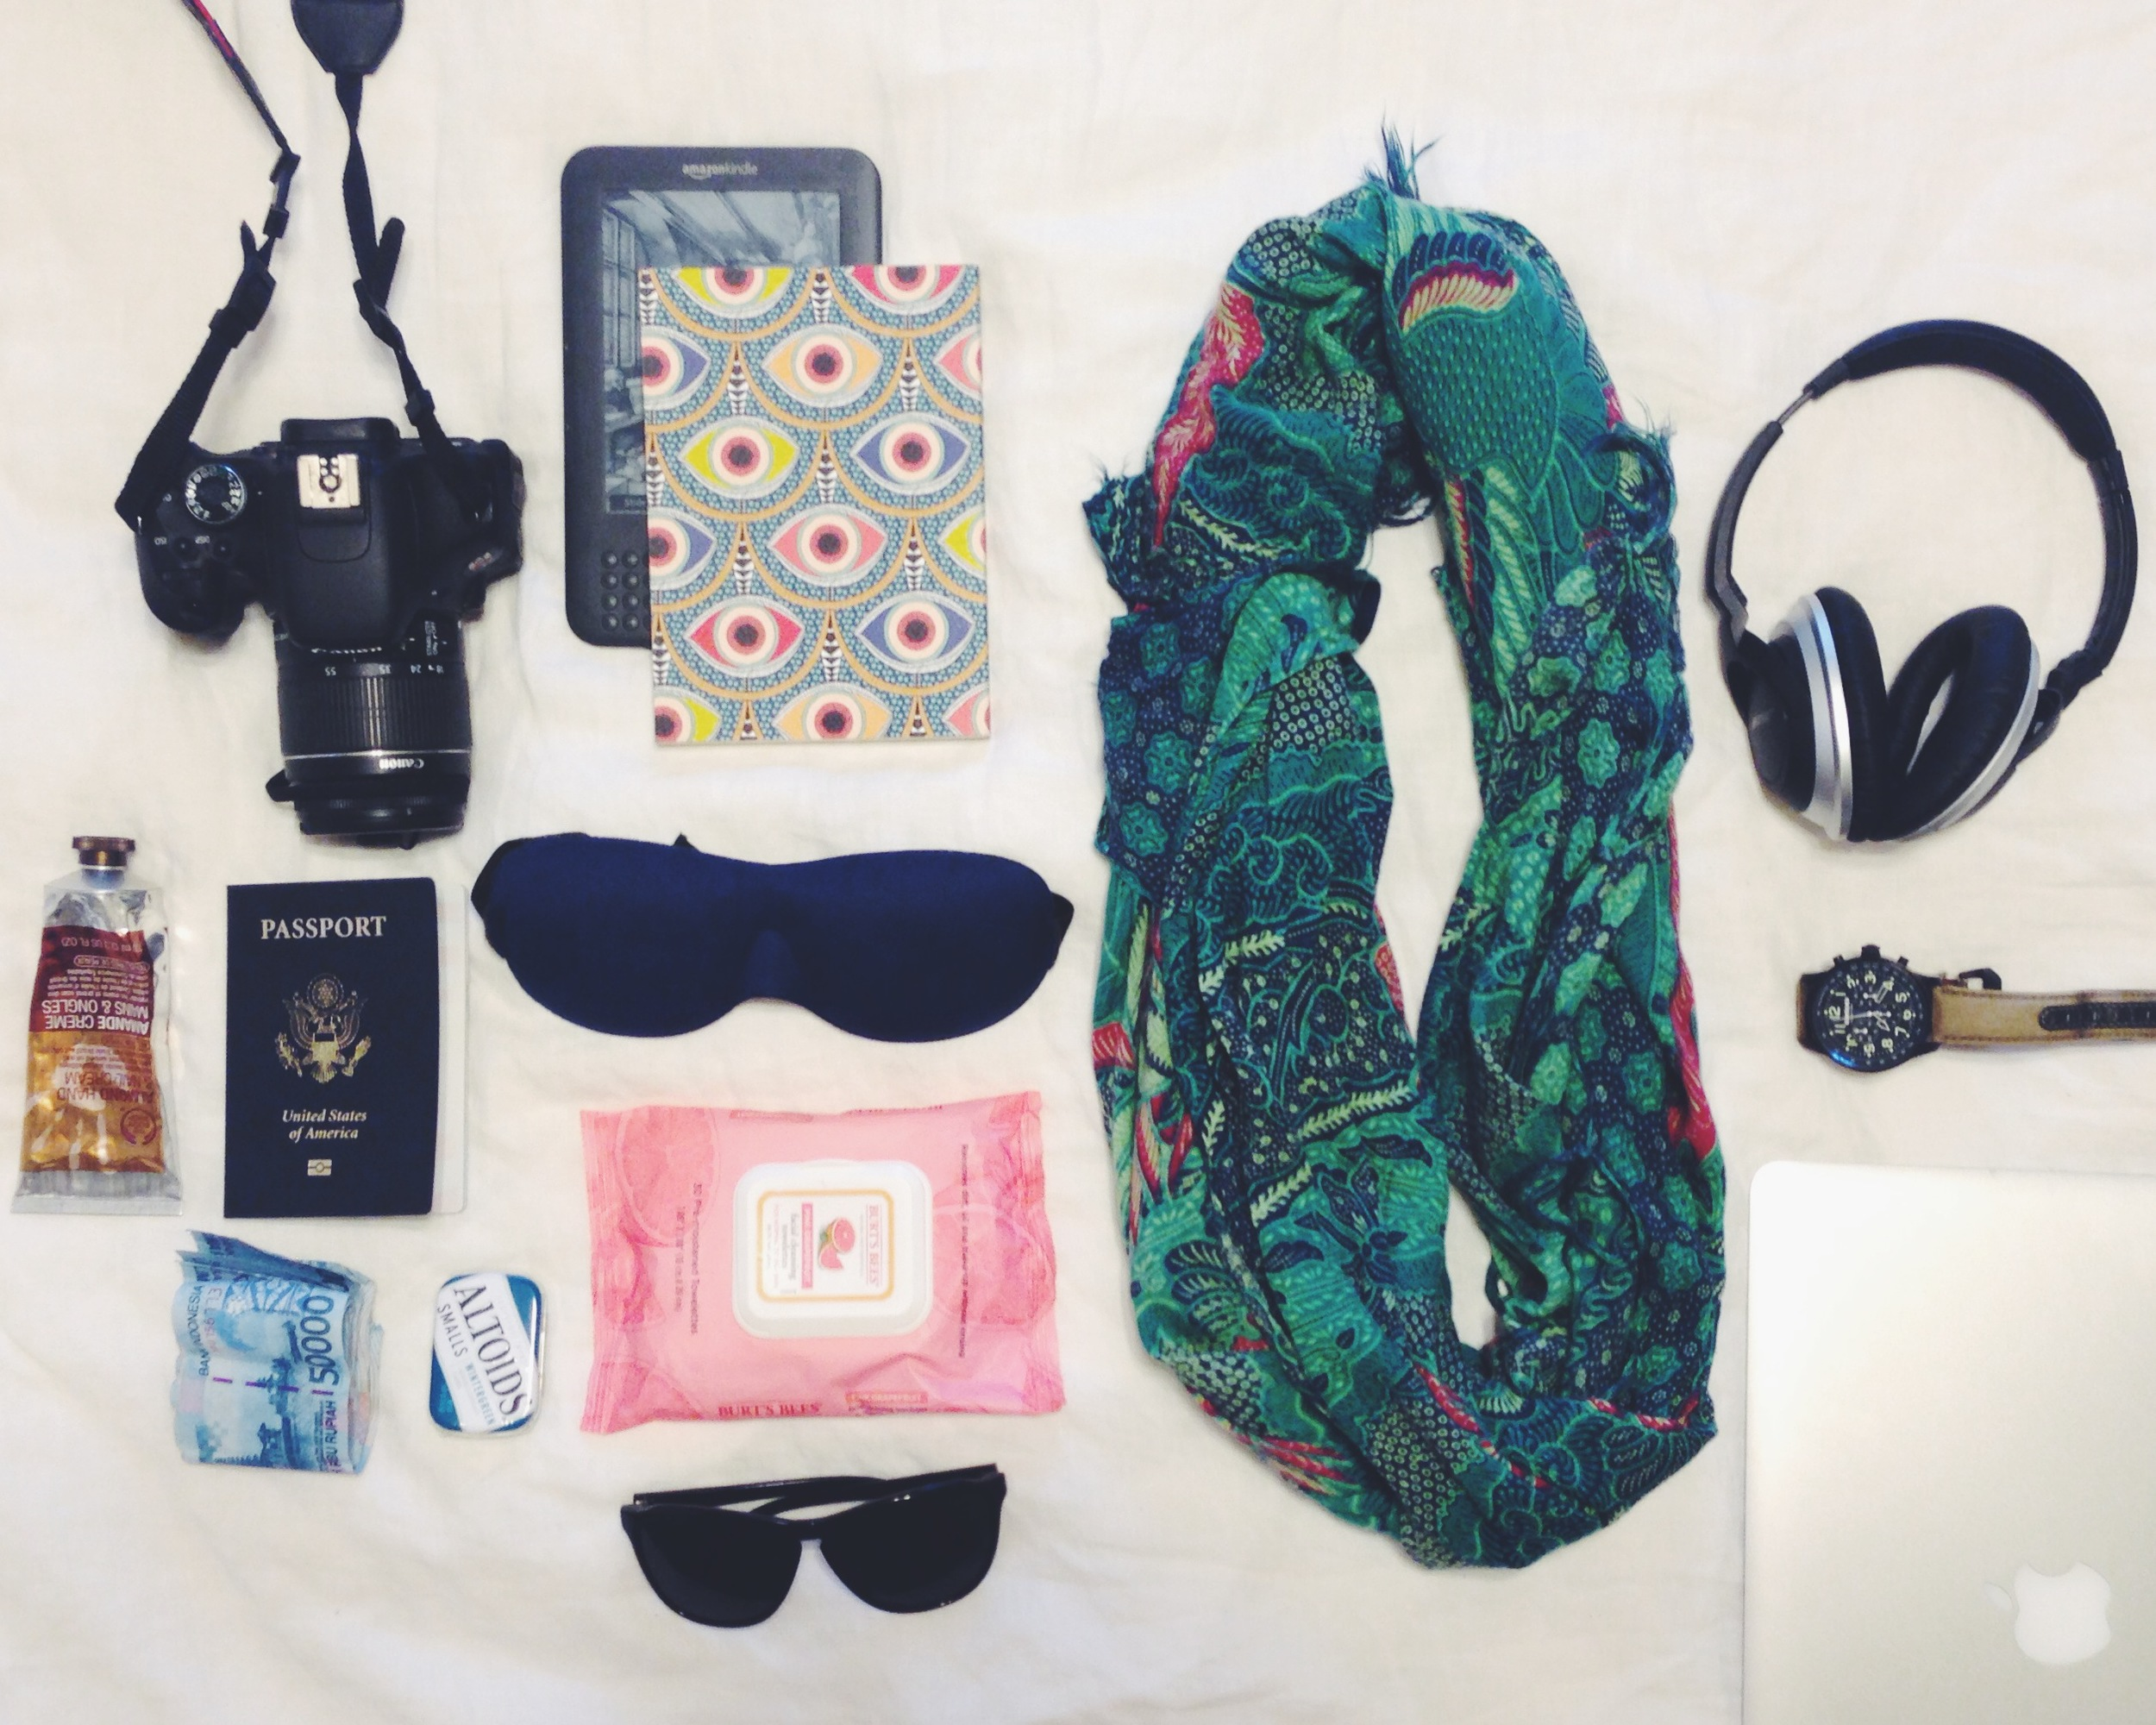 In my carry on. Not pictured: a pair of panties to change into later, my iphone, chargers, water and peanut mm's.